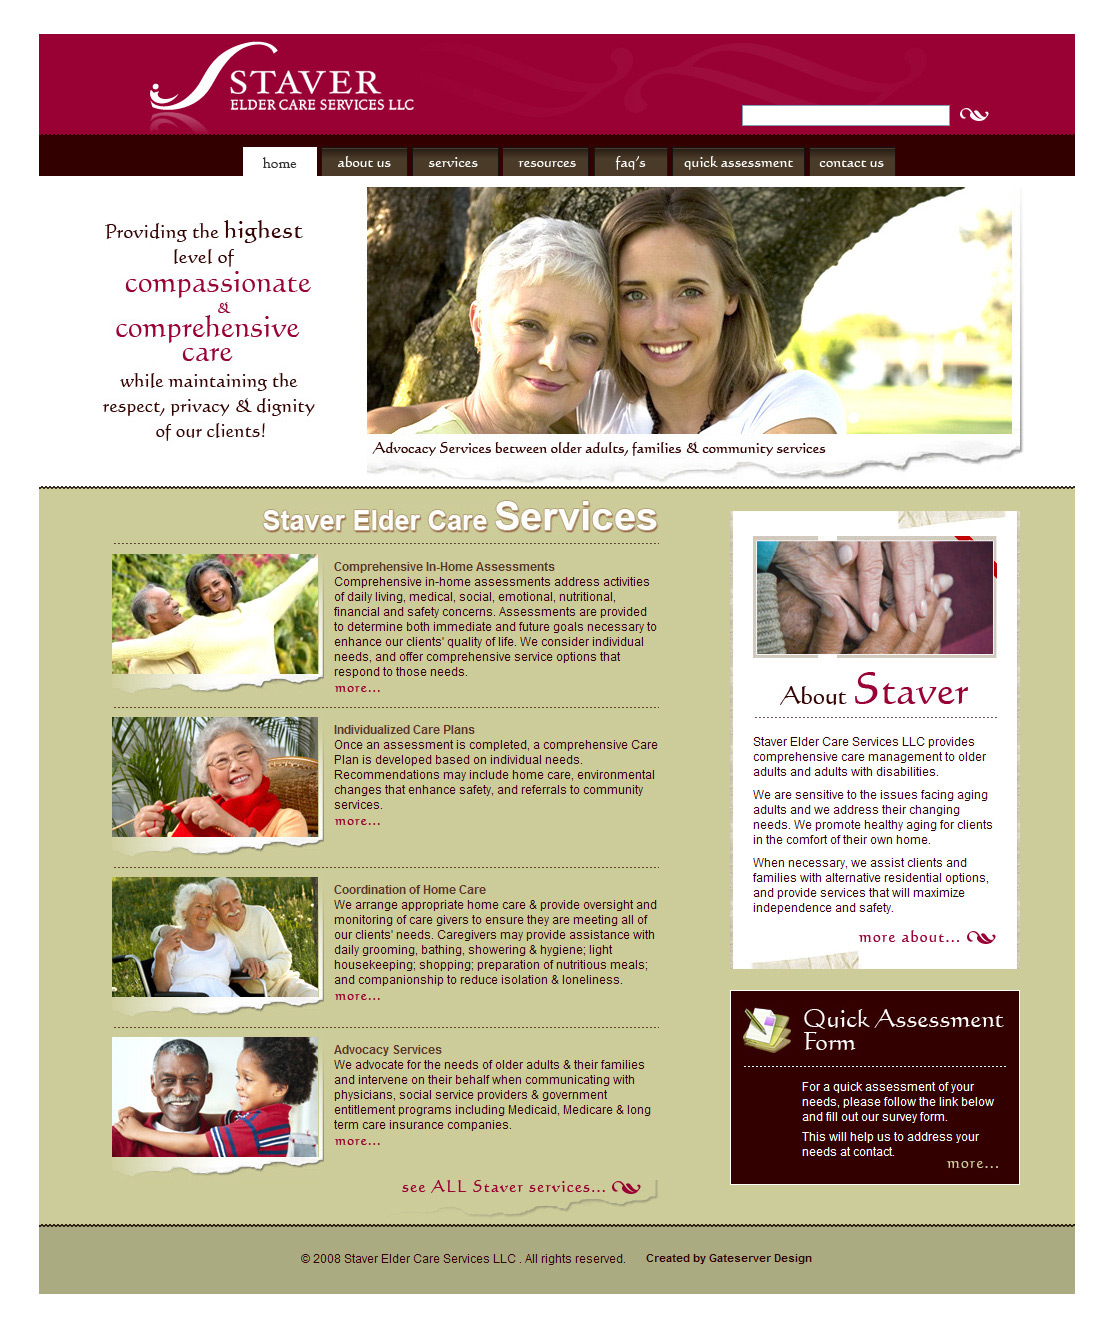 Day adult health brochure